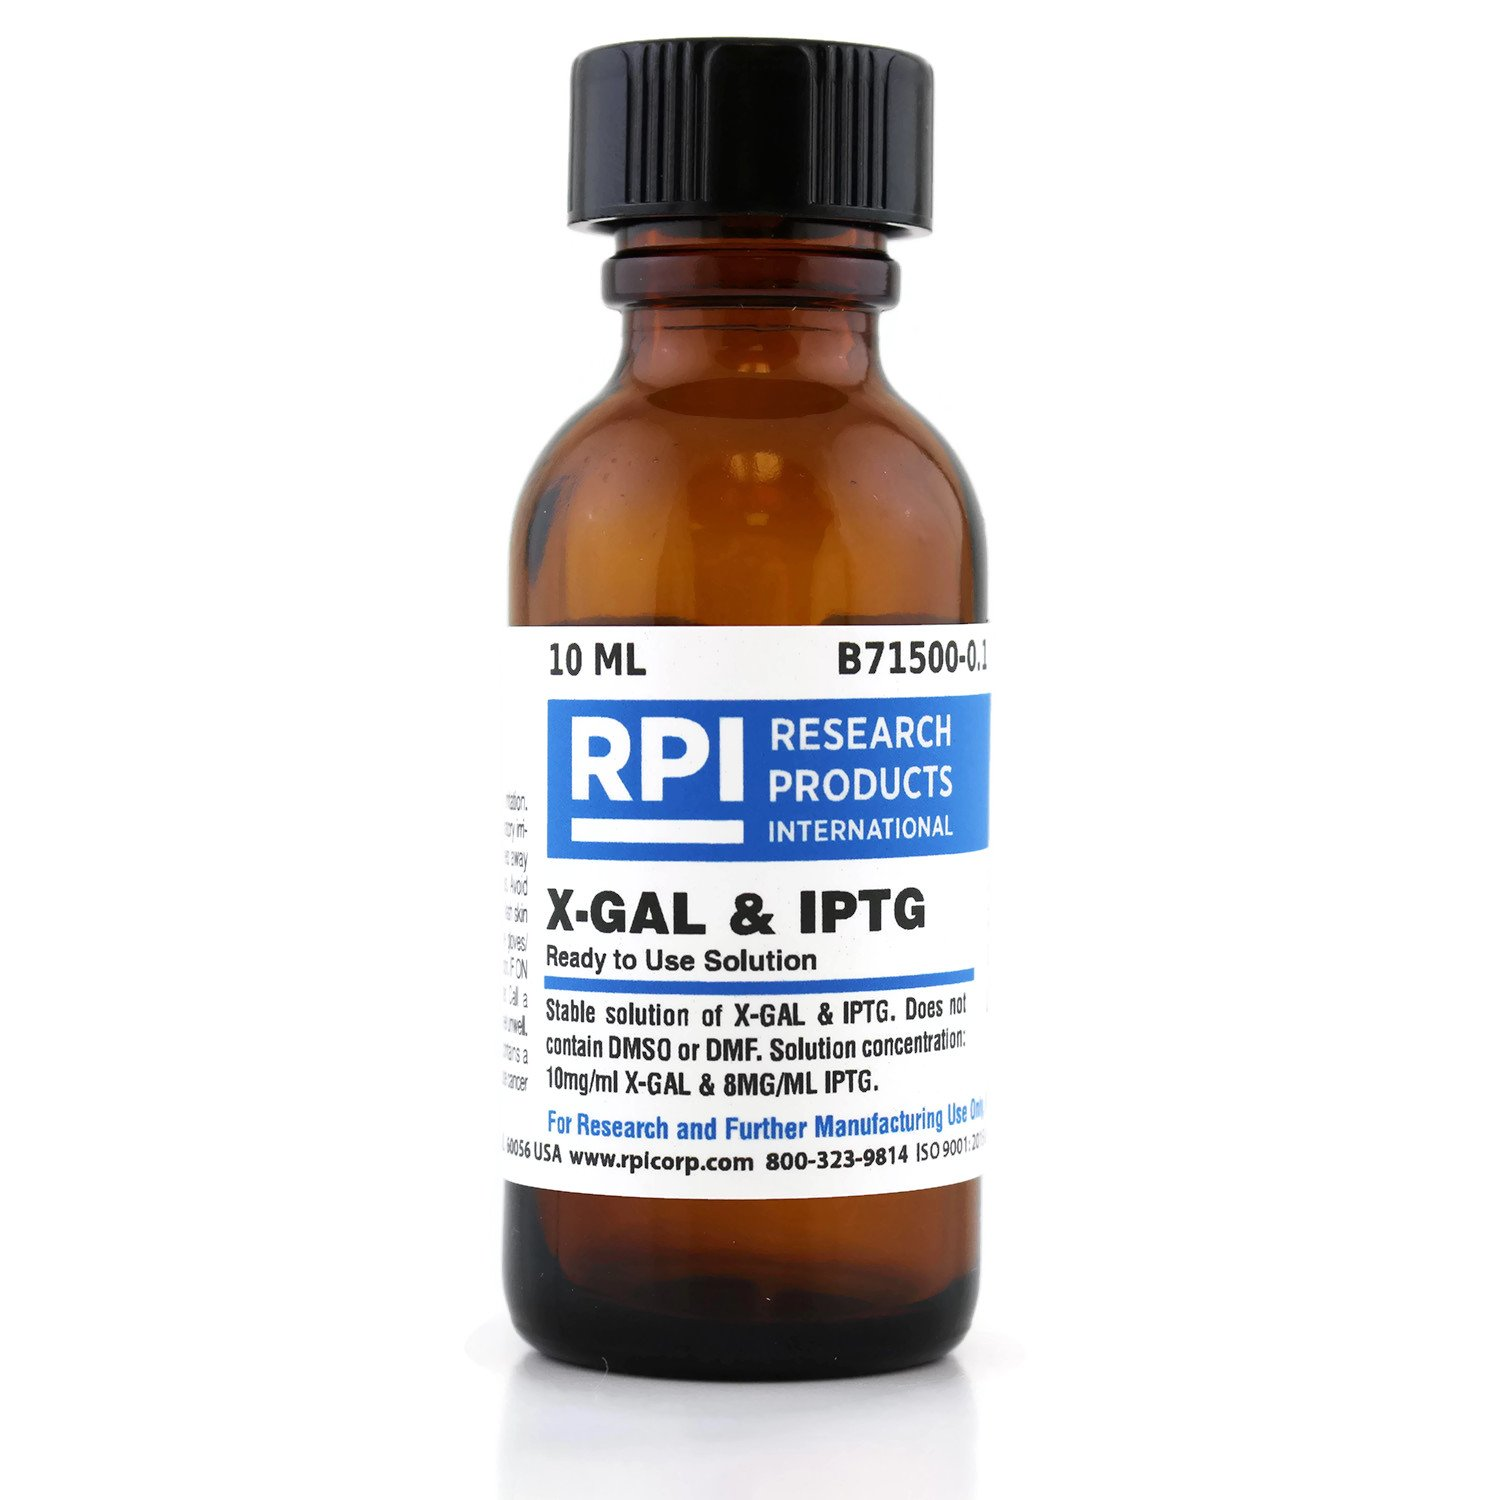 X-GAL & IPTG, Ready to Use, Non-Toxic Solution 10 mg/ml, 10 Milliliters